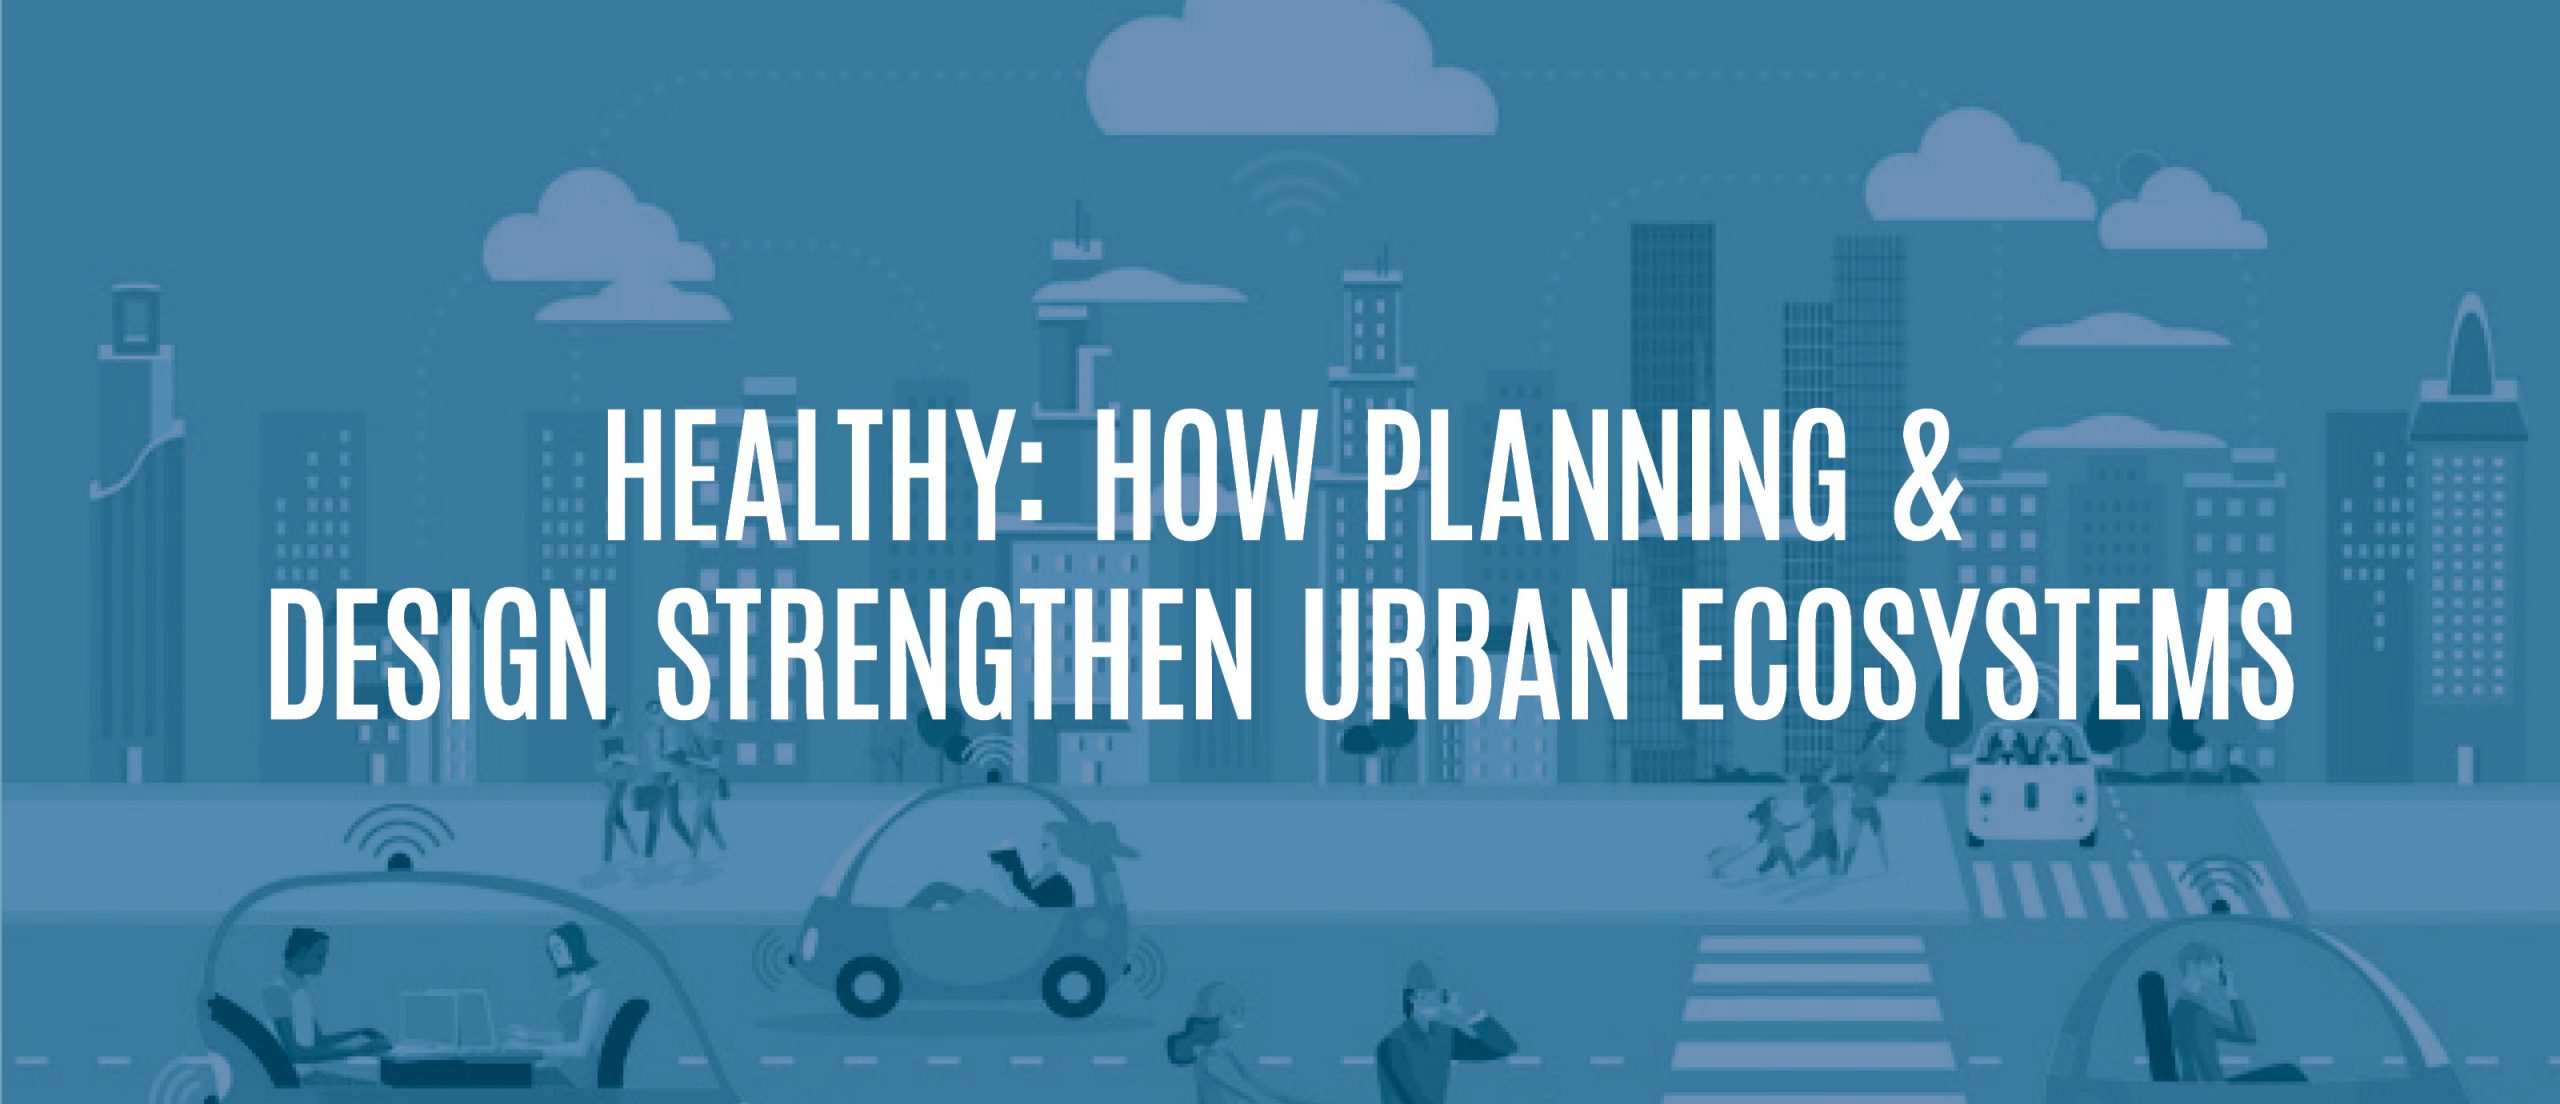 Blog Title - Healthy: How planning & design strengthen urban ecosystems